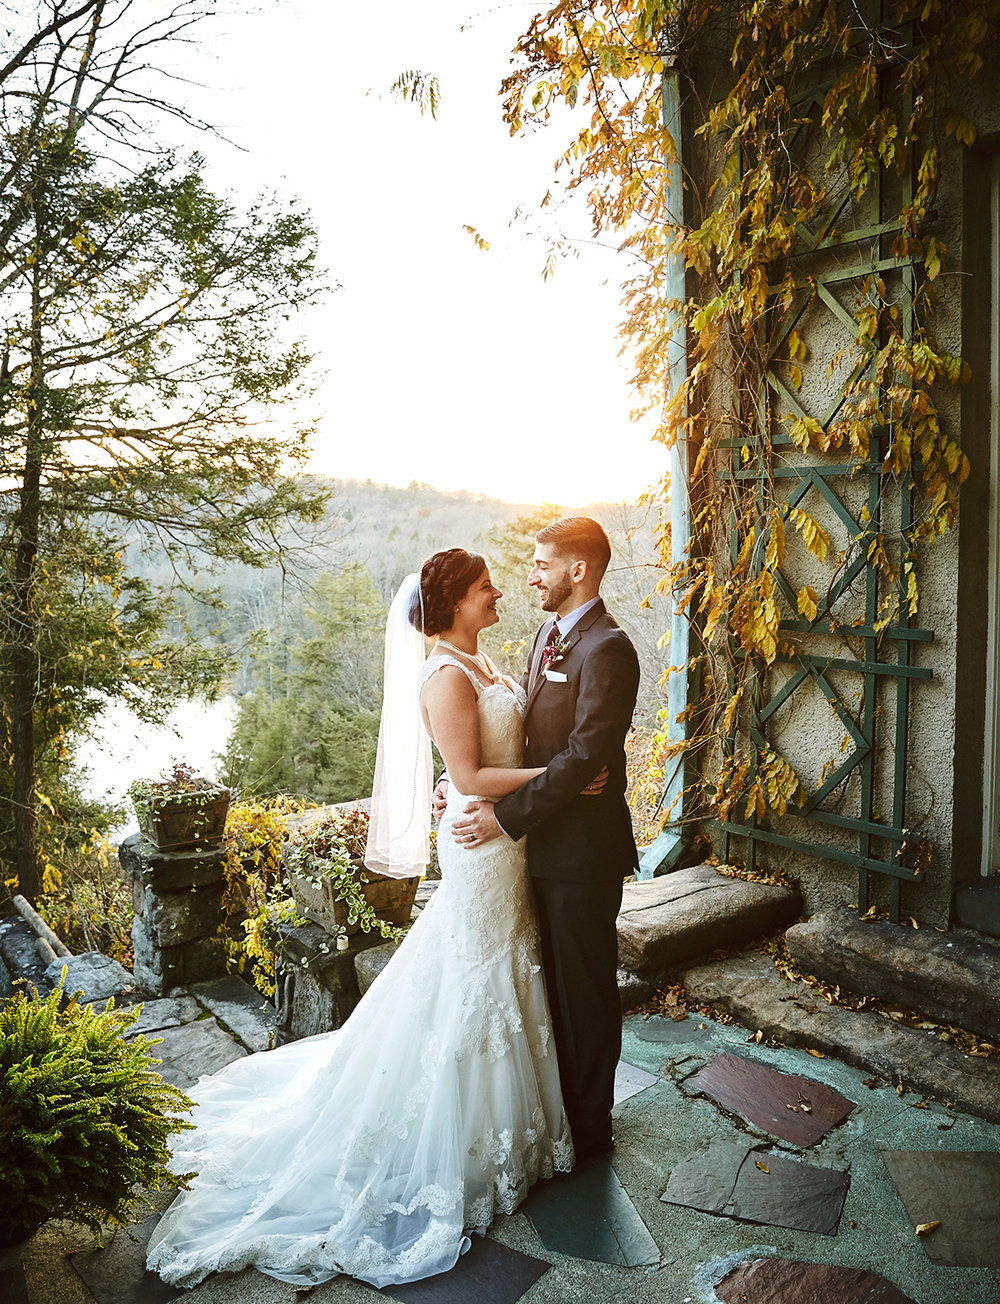 161119_ArrowParkLake&LodgeWedding_By_BriJohnsonWeddings_0129.jpg